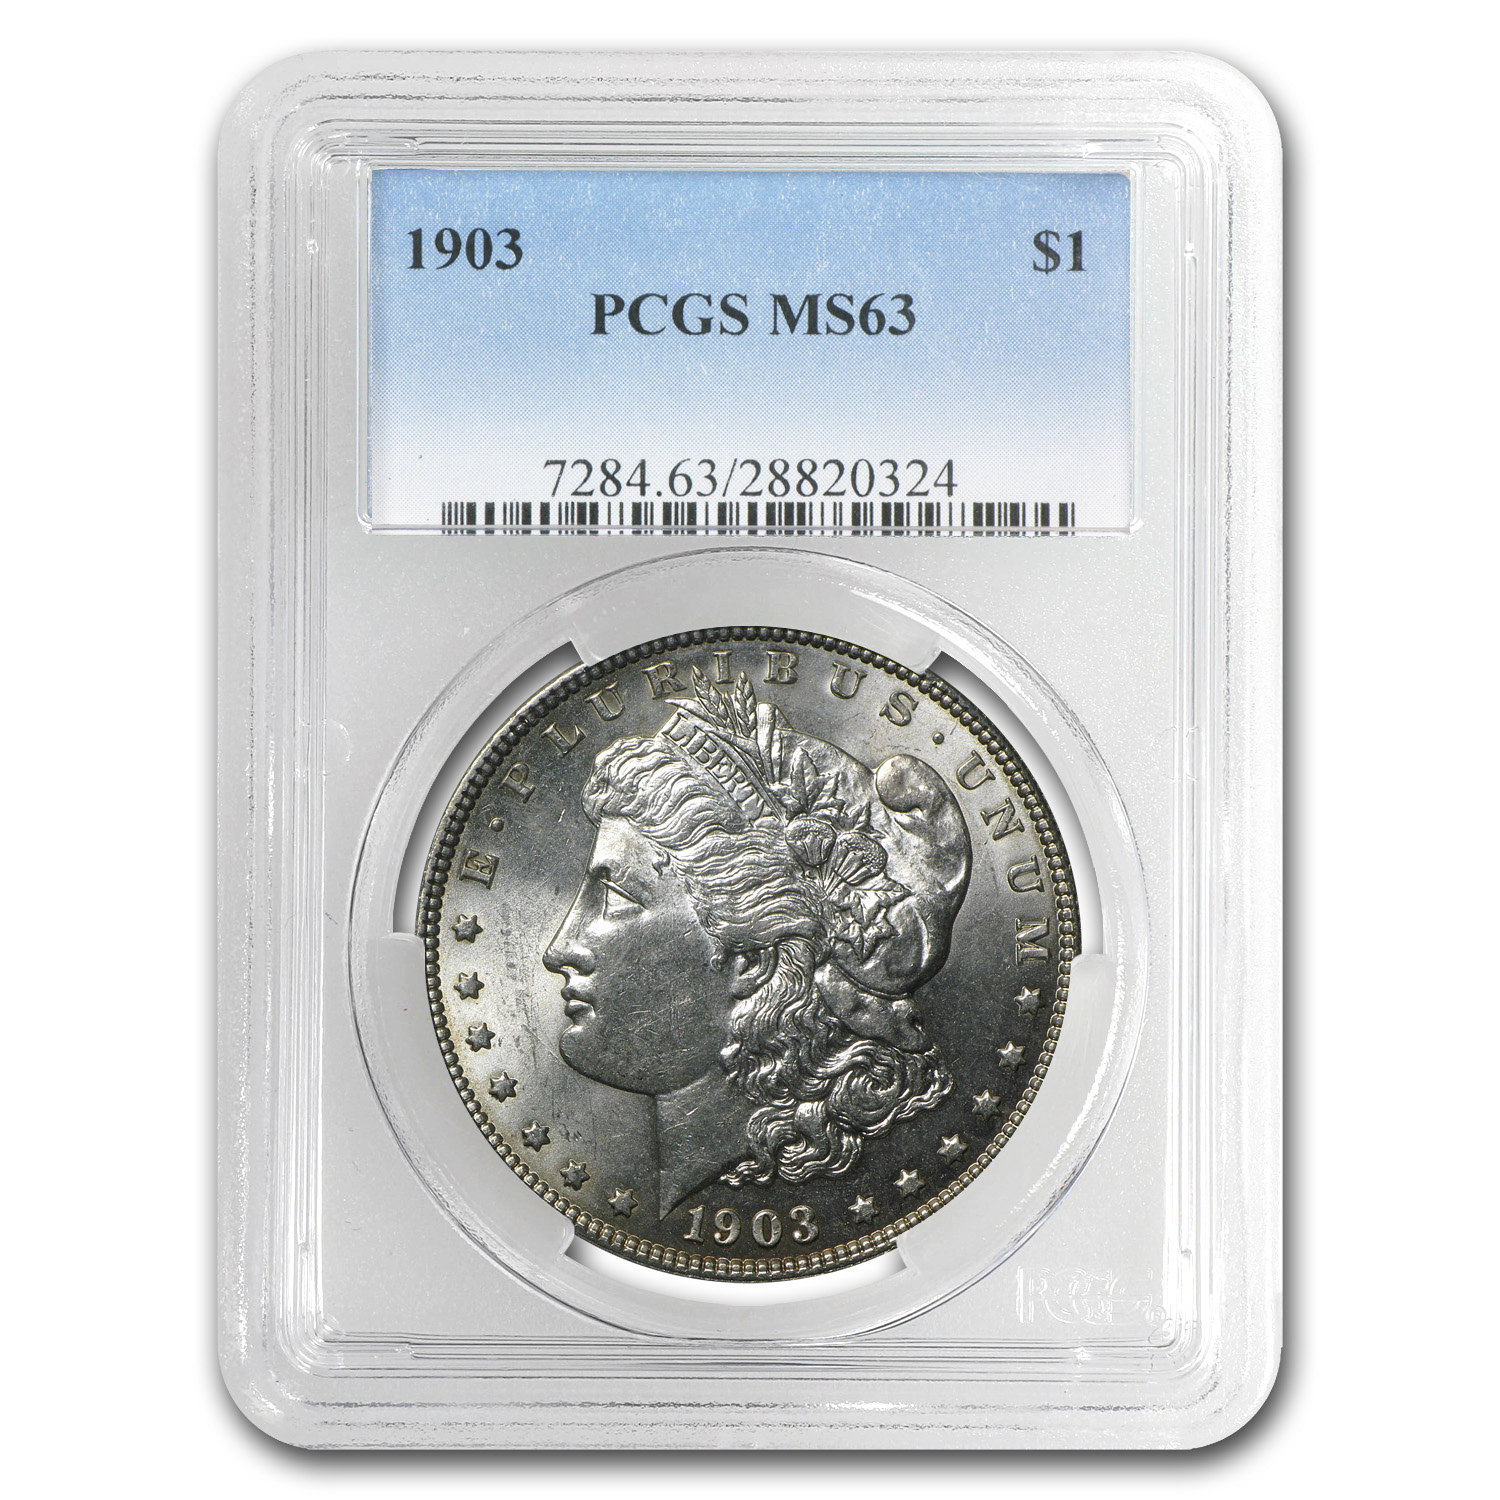 1903 Morgan Dollar Mint State-63 PCGS